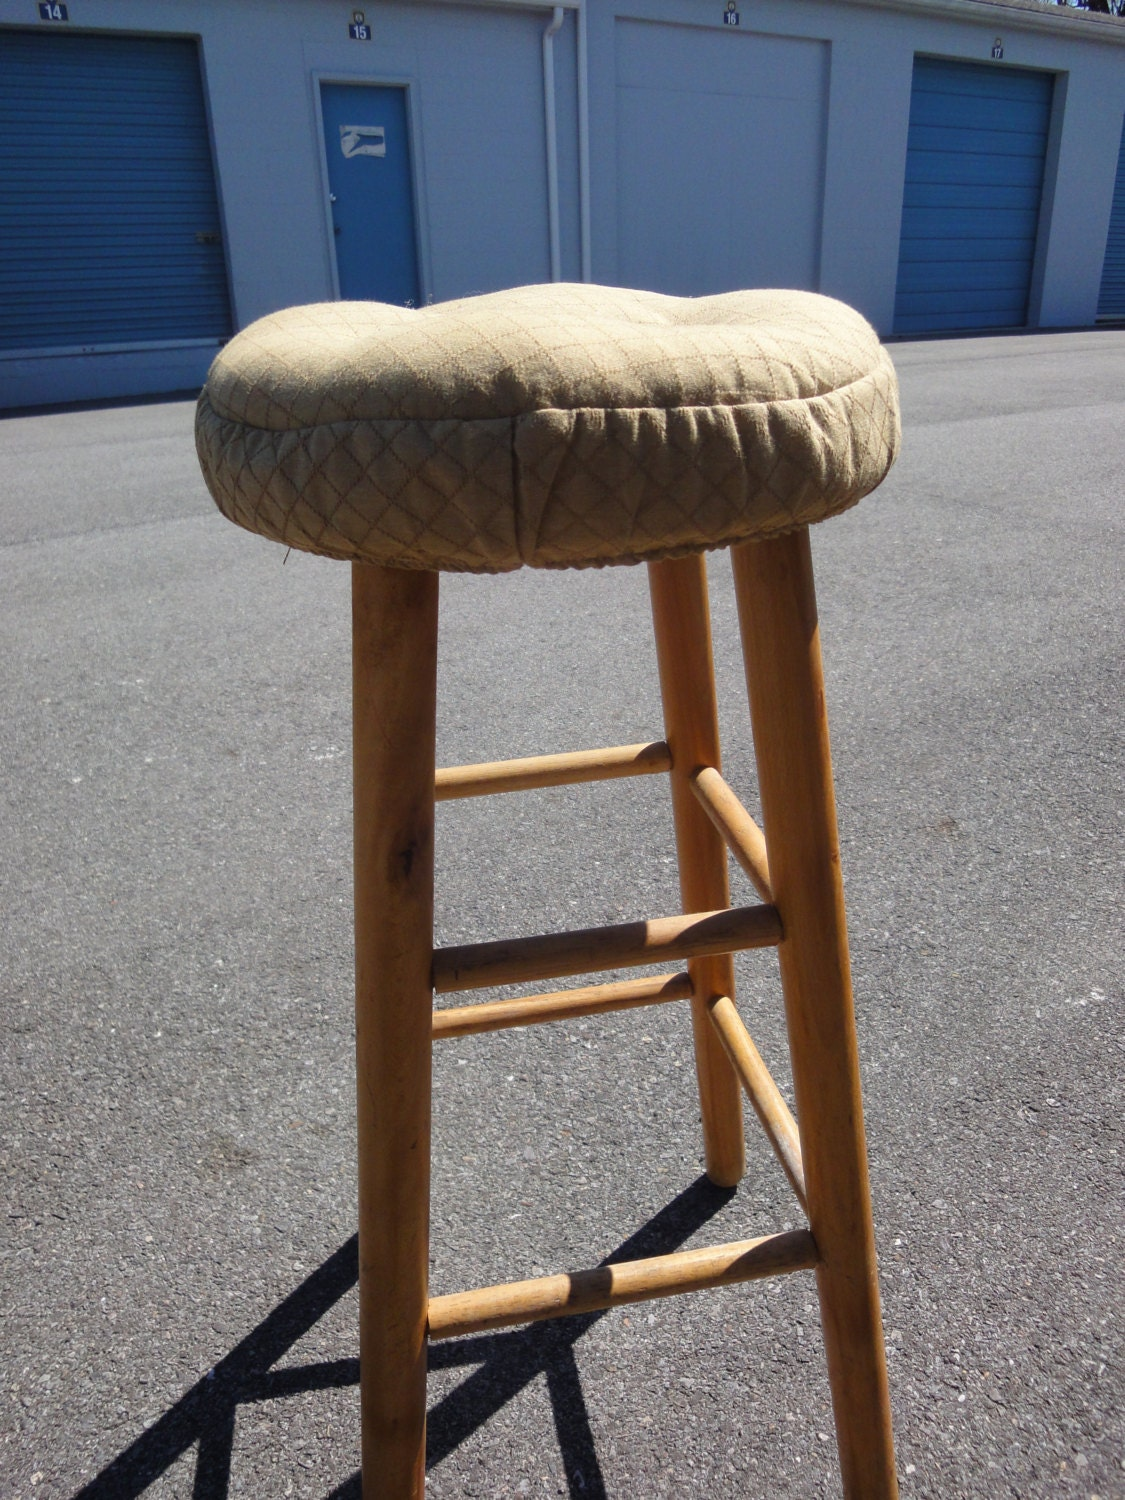 Vintage 1950's Bar Stool with Cushion Seat/Central Chair